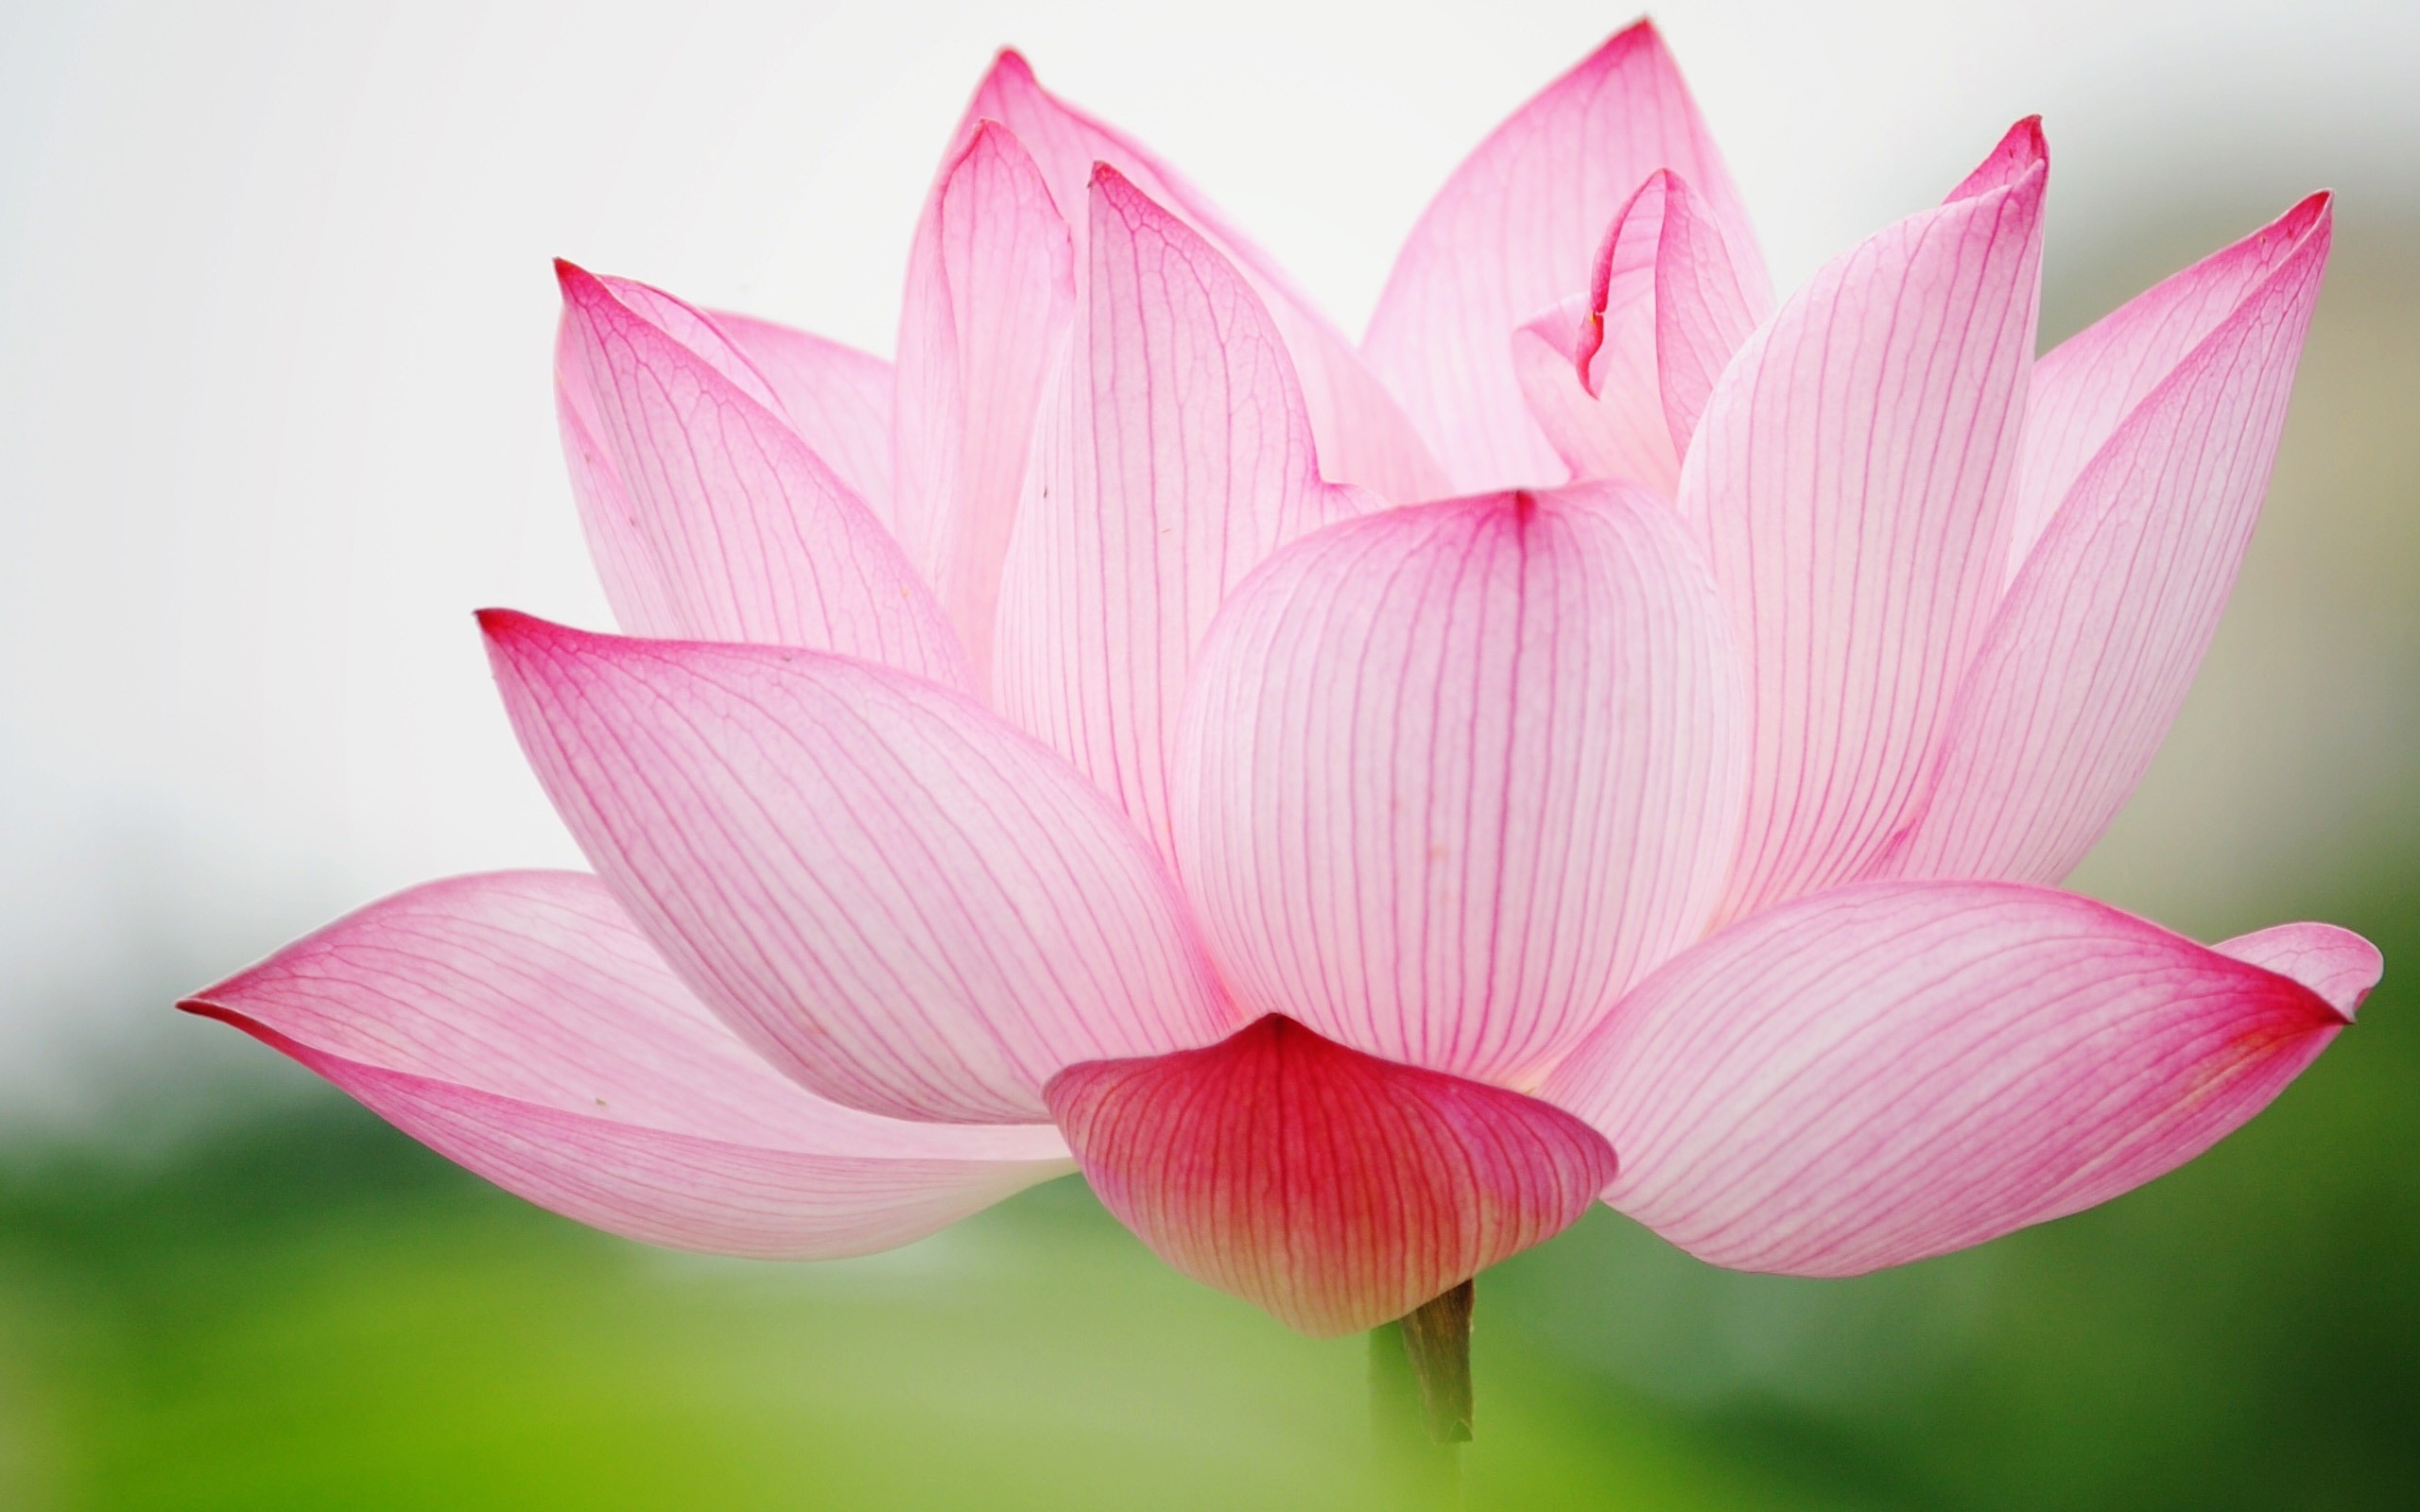 Beautiful lotus flower high resolution wallpaper hd wallpapers attachment picture for high definition desktop wallpapers with pink lotus flower izmirmasajfo